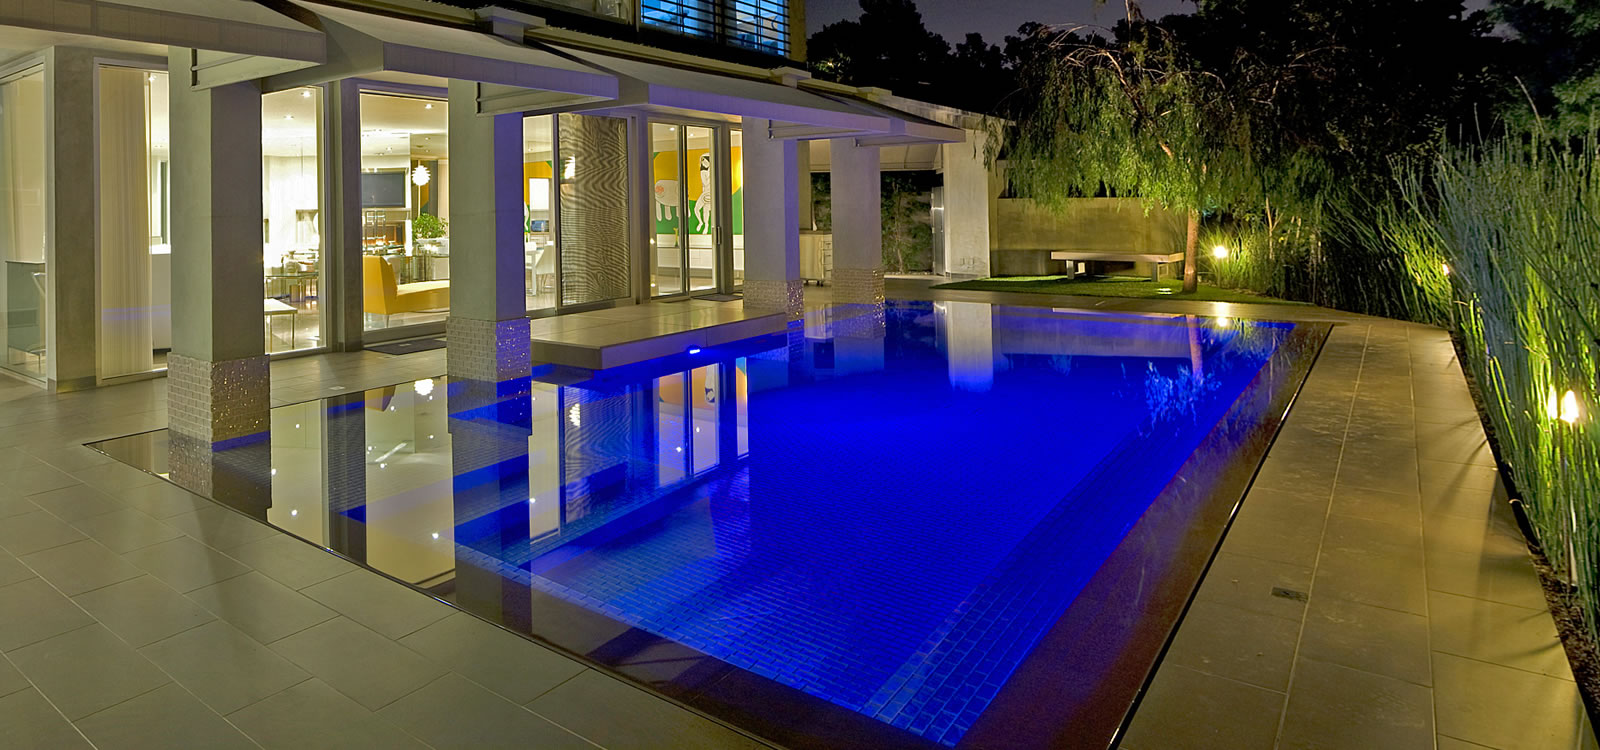 Southern California Award Winning Custom Pool Designer</h2>